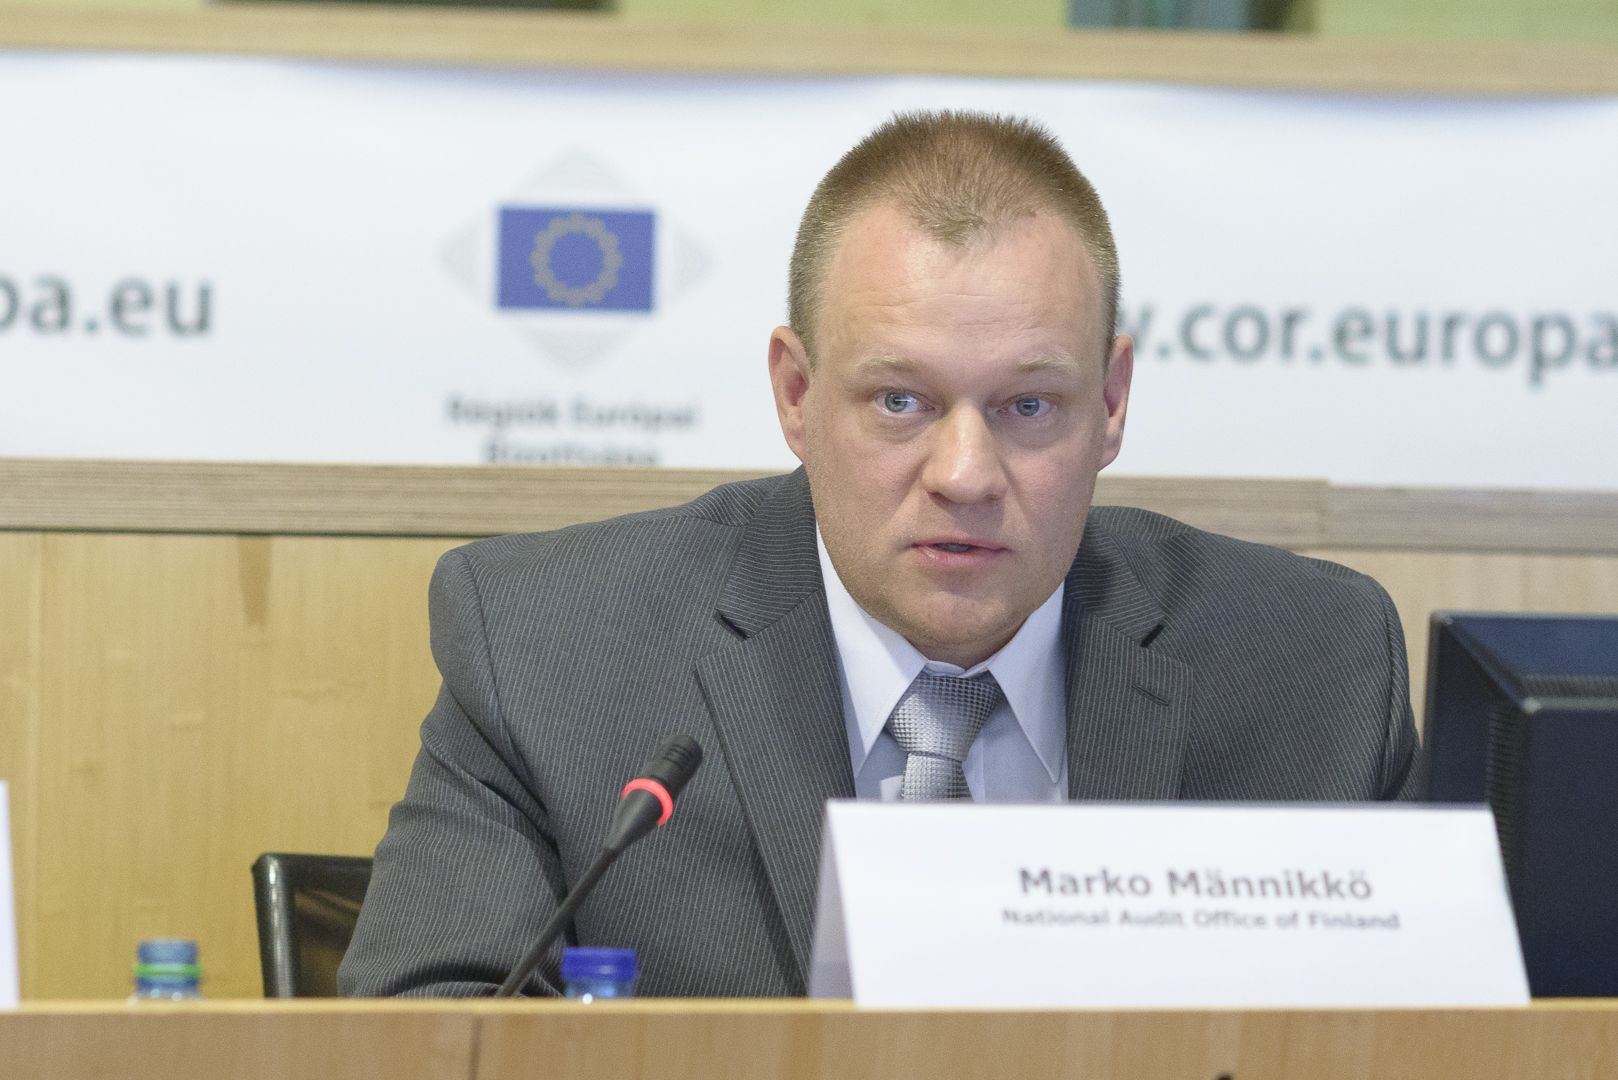 UTTING EU LAW INTO PRACTICE CONFERENCE - Marko Männikkö, Deputy Auditor General, National Audit Office of Finland